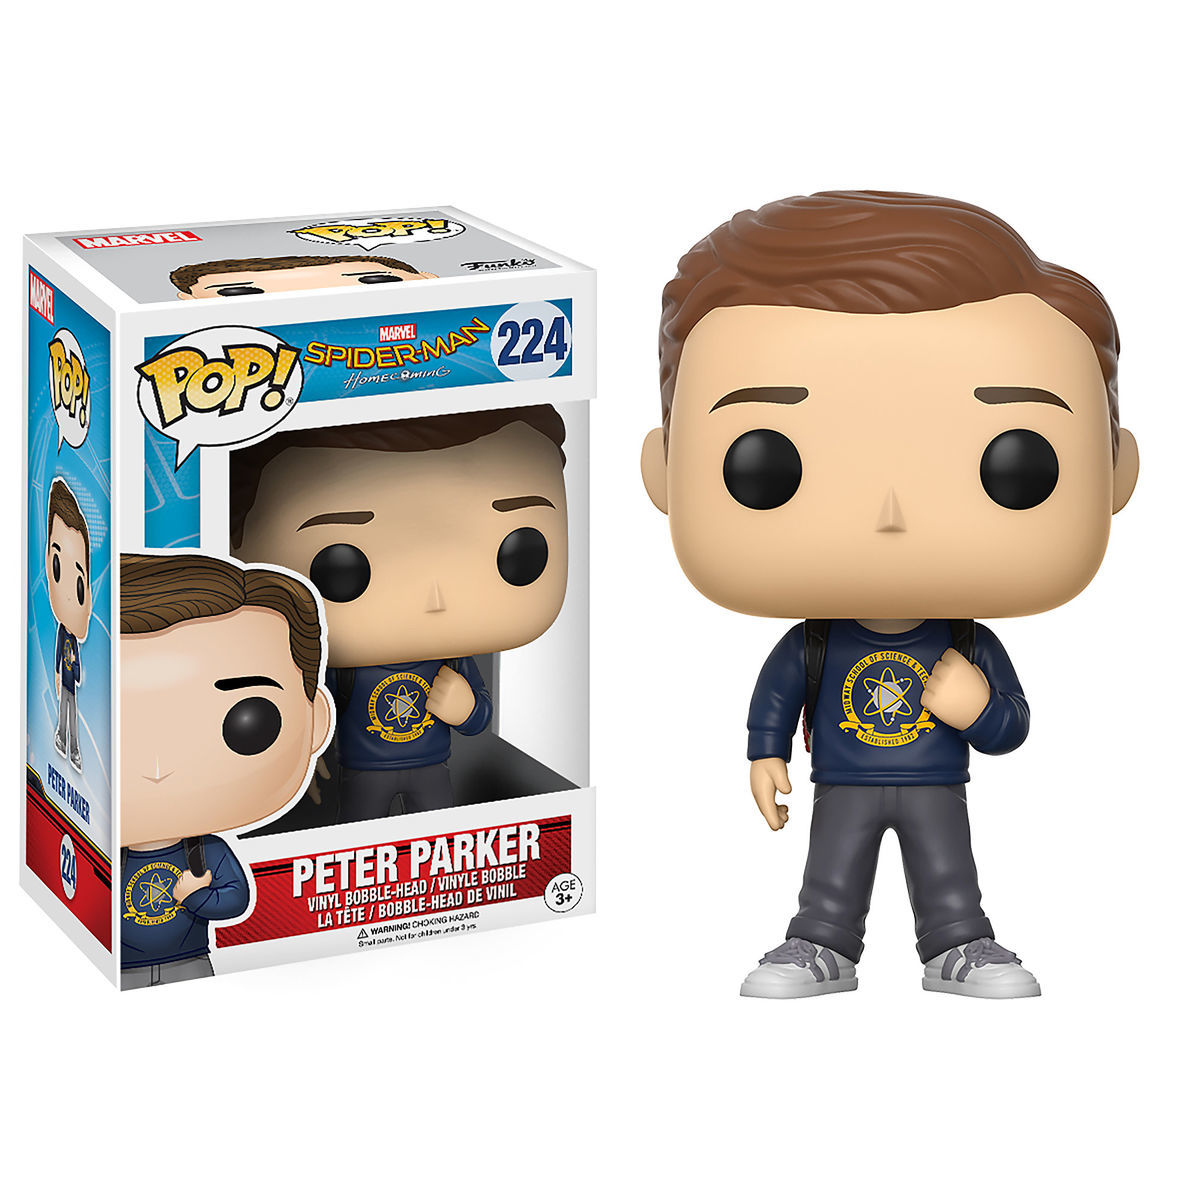 Product Image of Peter Parker Pop! Vinyl Bobble-Head Figure by Funko - Spider-Man: Homecoming # 1